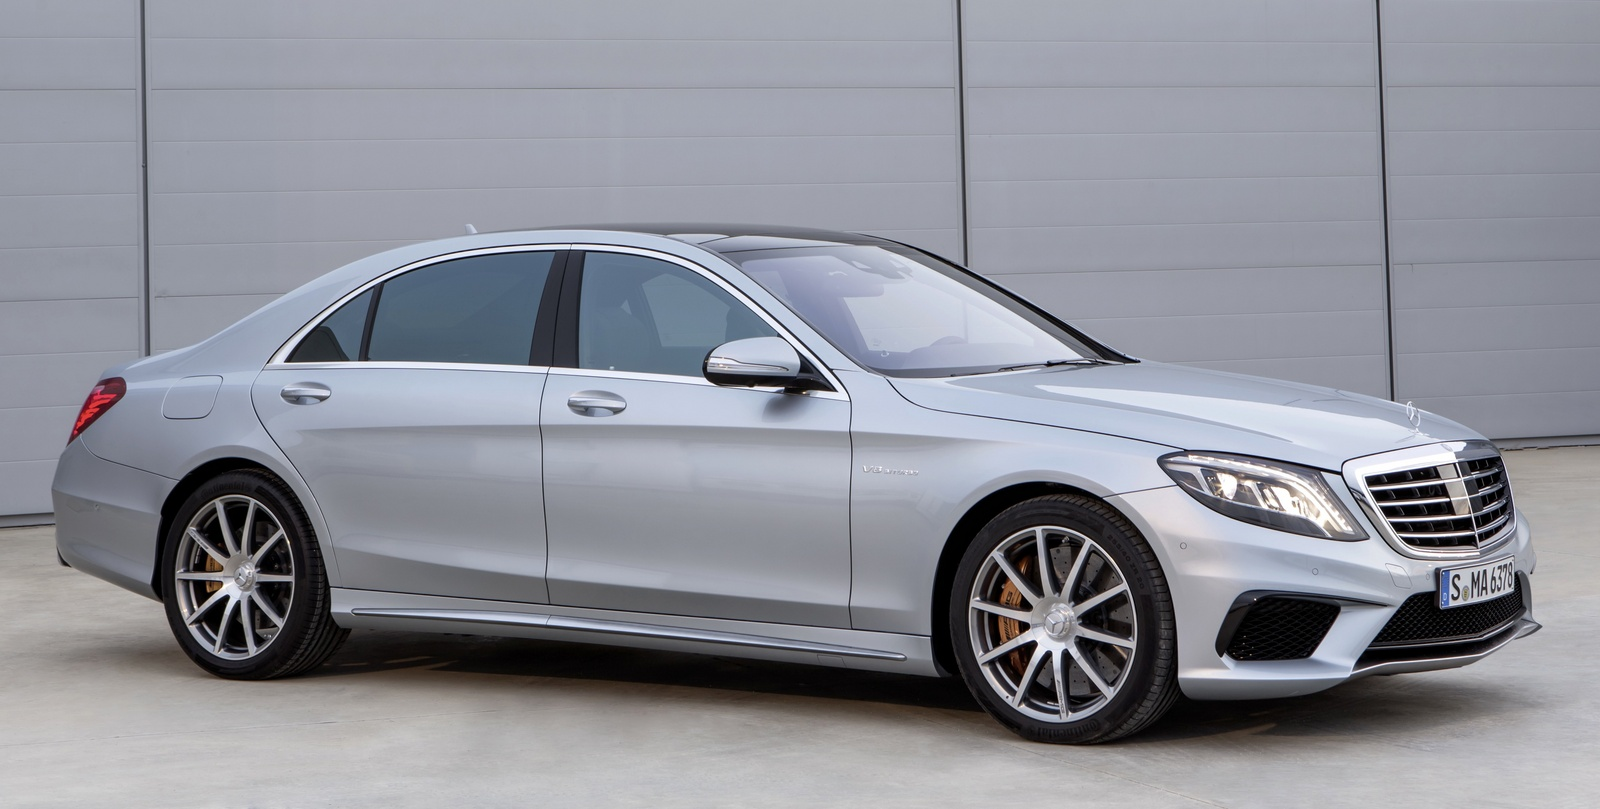 2014 mercedes benz s class review cargurus for New mercedes benz s class 2014